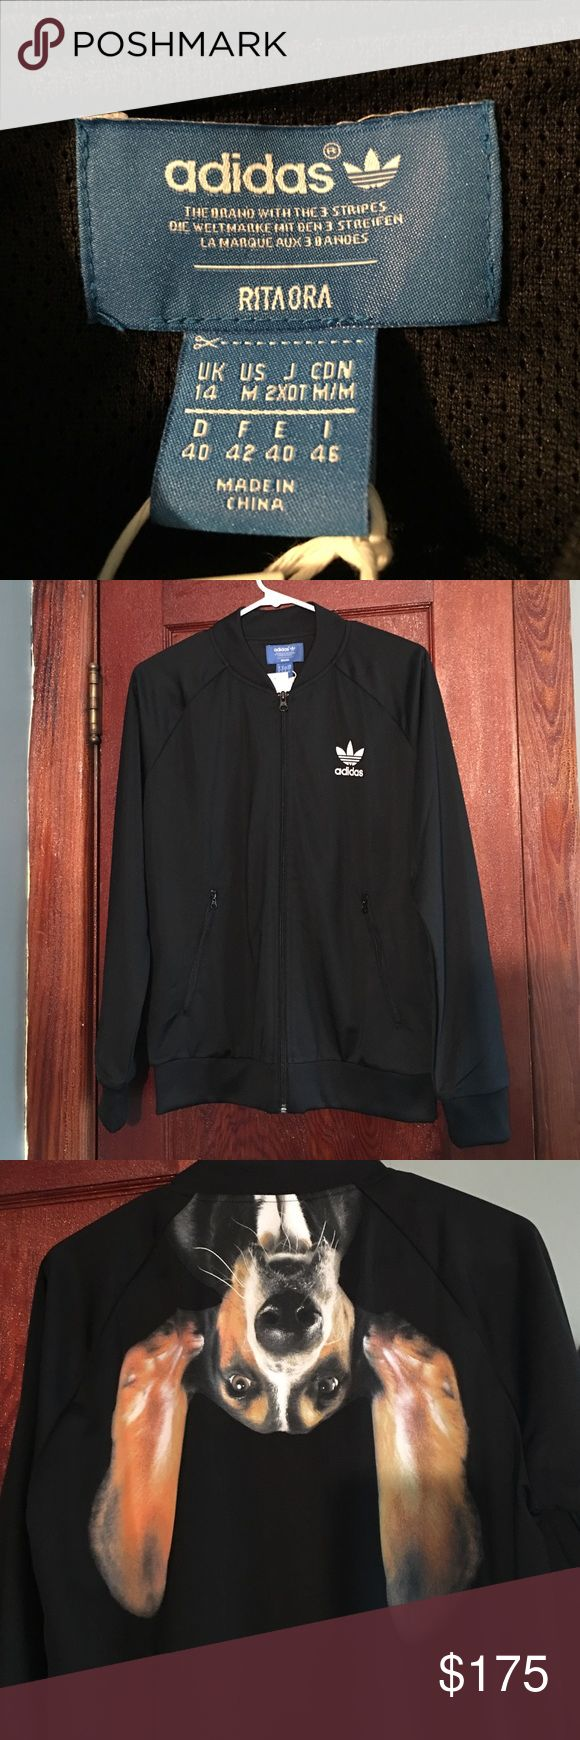 Rita Ora for ADIDAS Puppy Track Jacket You will not find another, not sold in US stores, this is an official Rita Ora for ADIDAS track jacket in black with hound dog graphic on the back Adidas Jackets & Coats